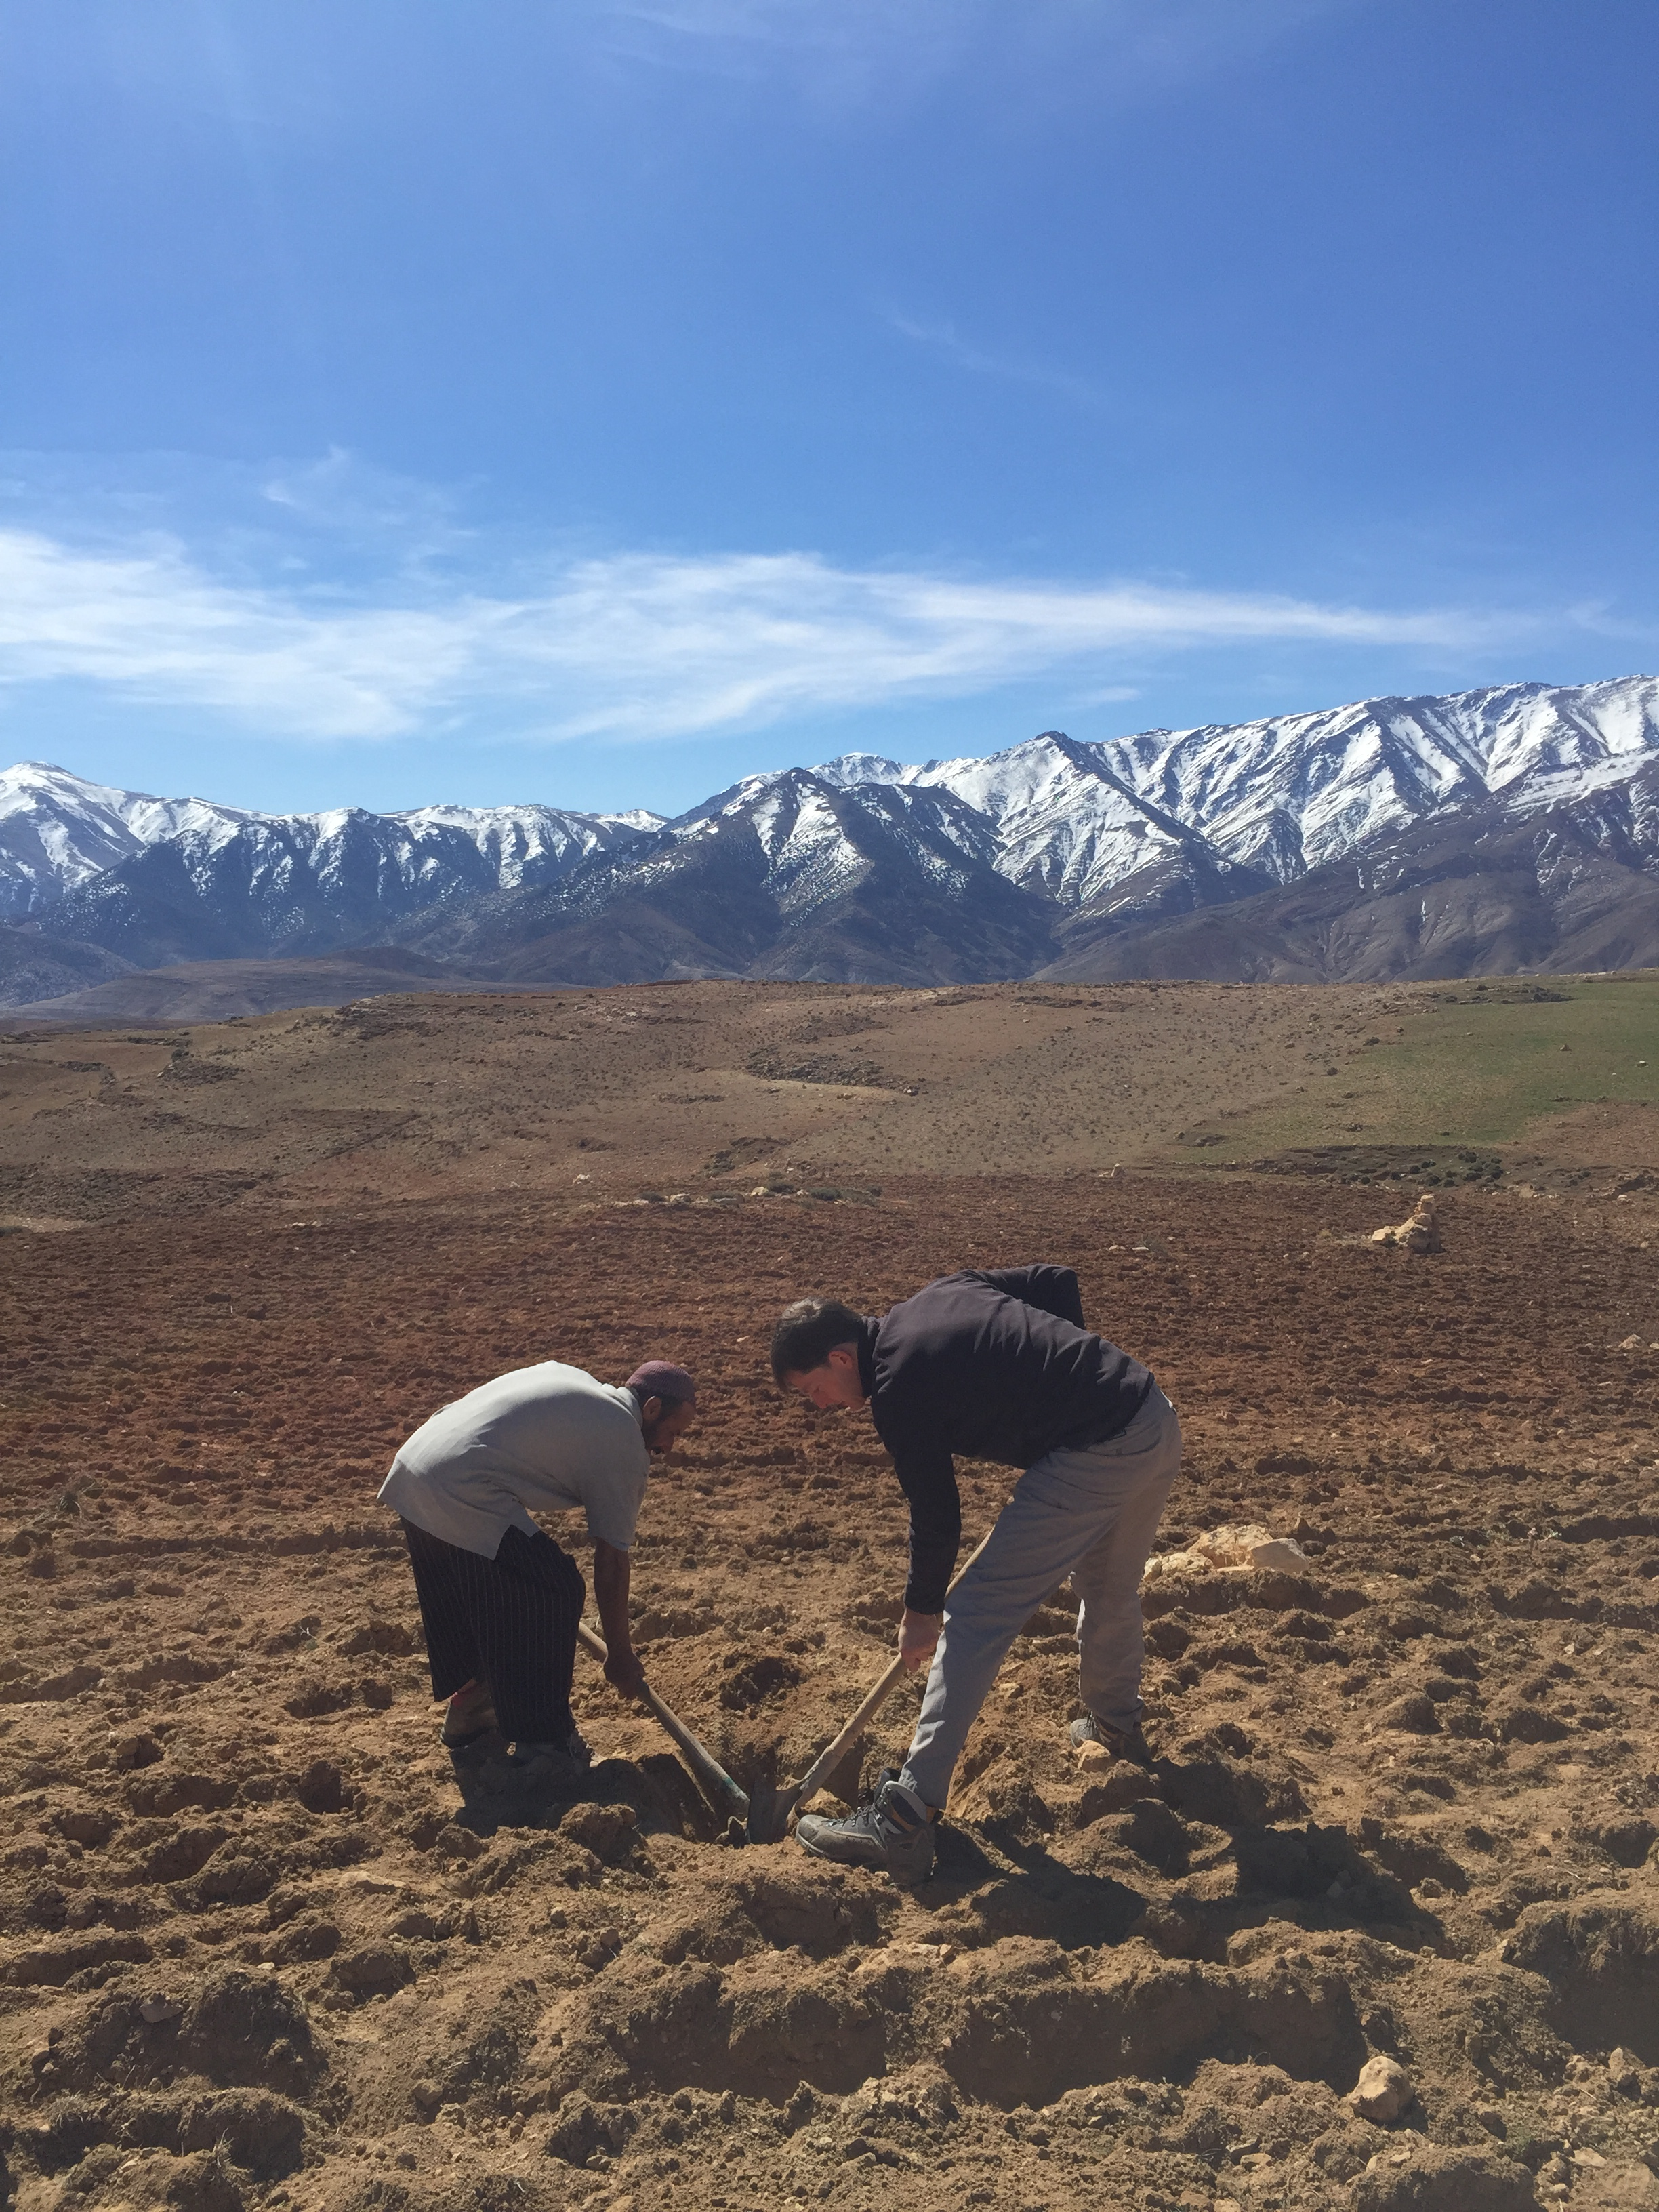 planting almond trees in the atlas mountains in morocco, adventurer alice morrison